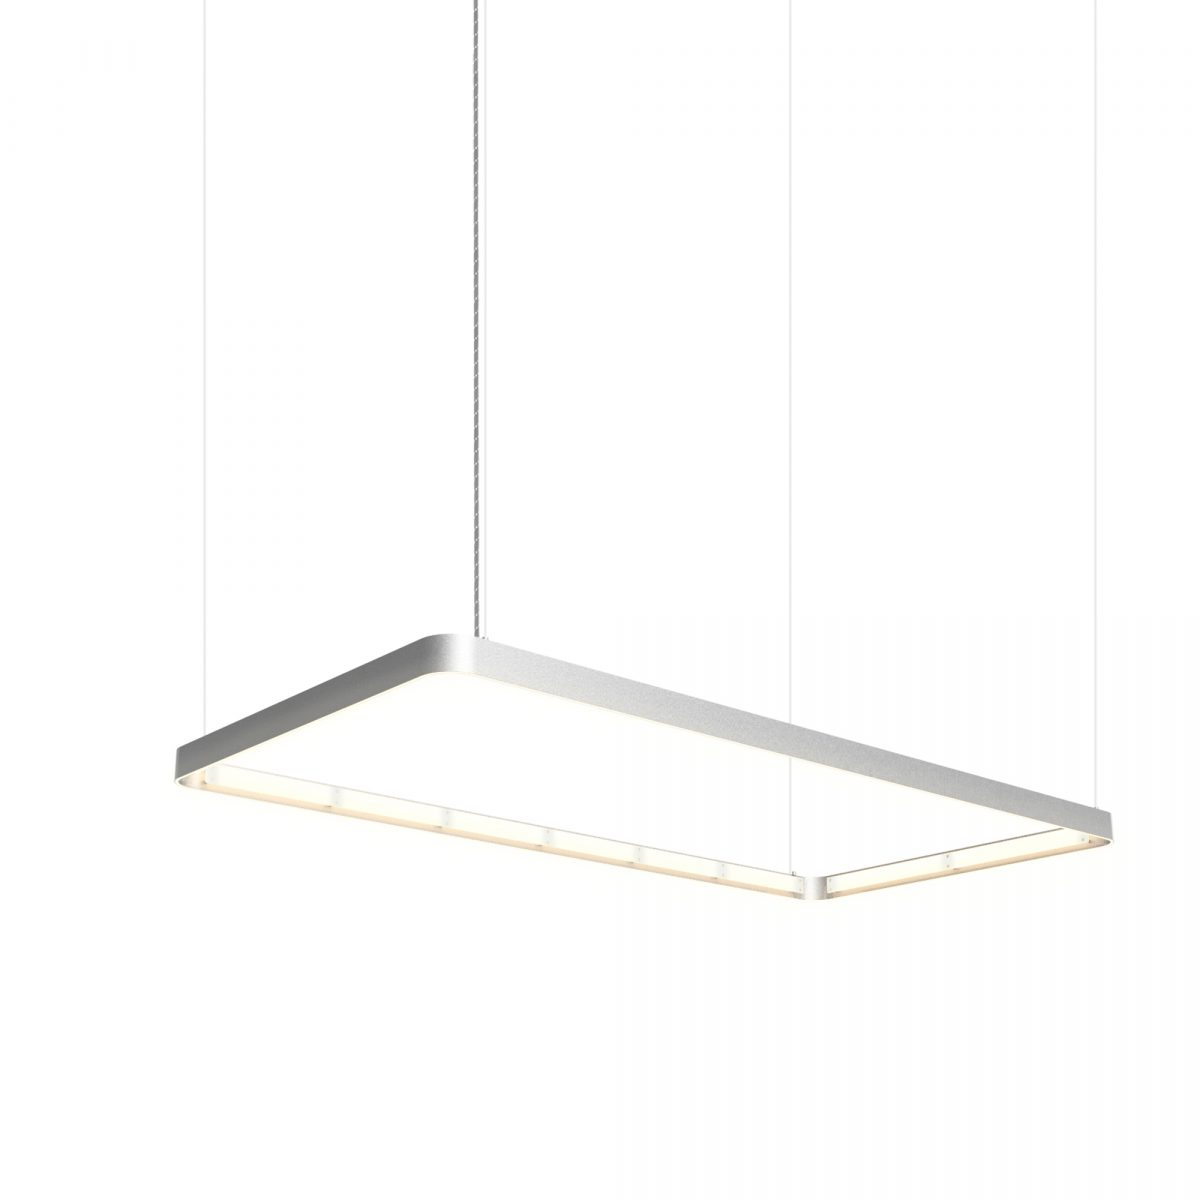 JSPR Eden Deco 75×150 Silver Rectangle